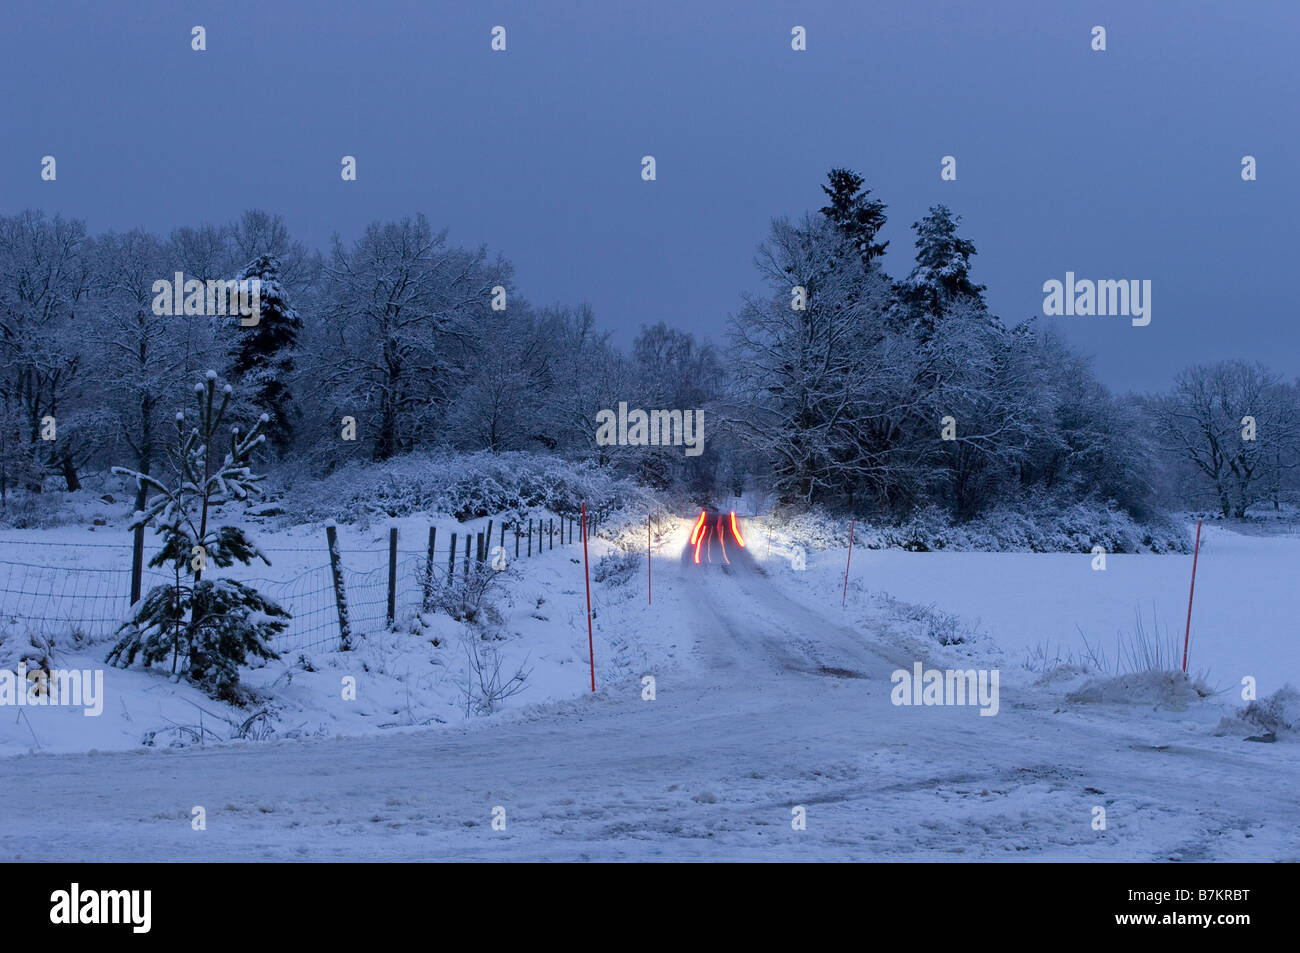 Car on winter road - Stock Image